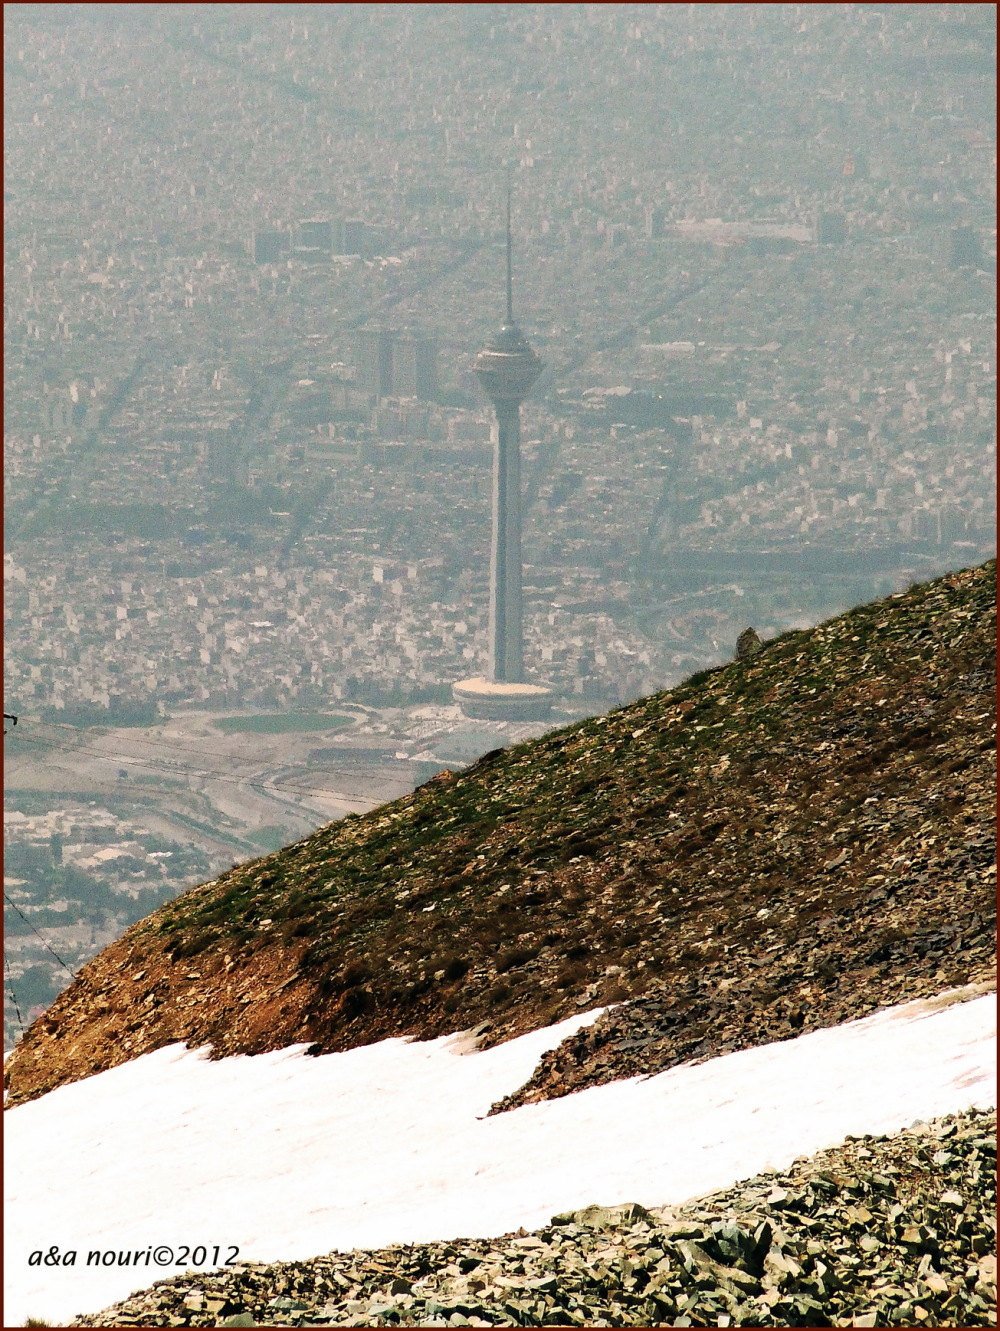 Milad tower from 3700 meters high